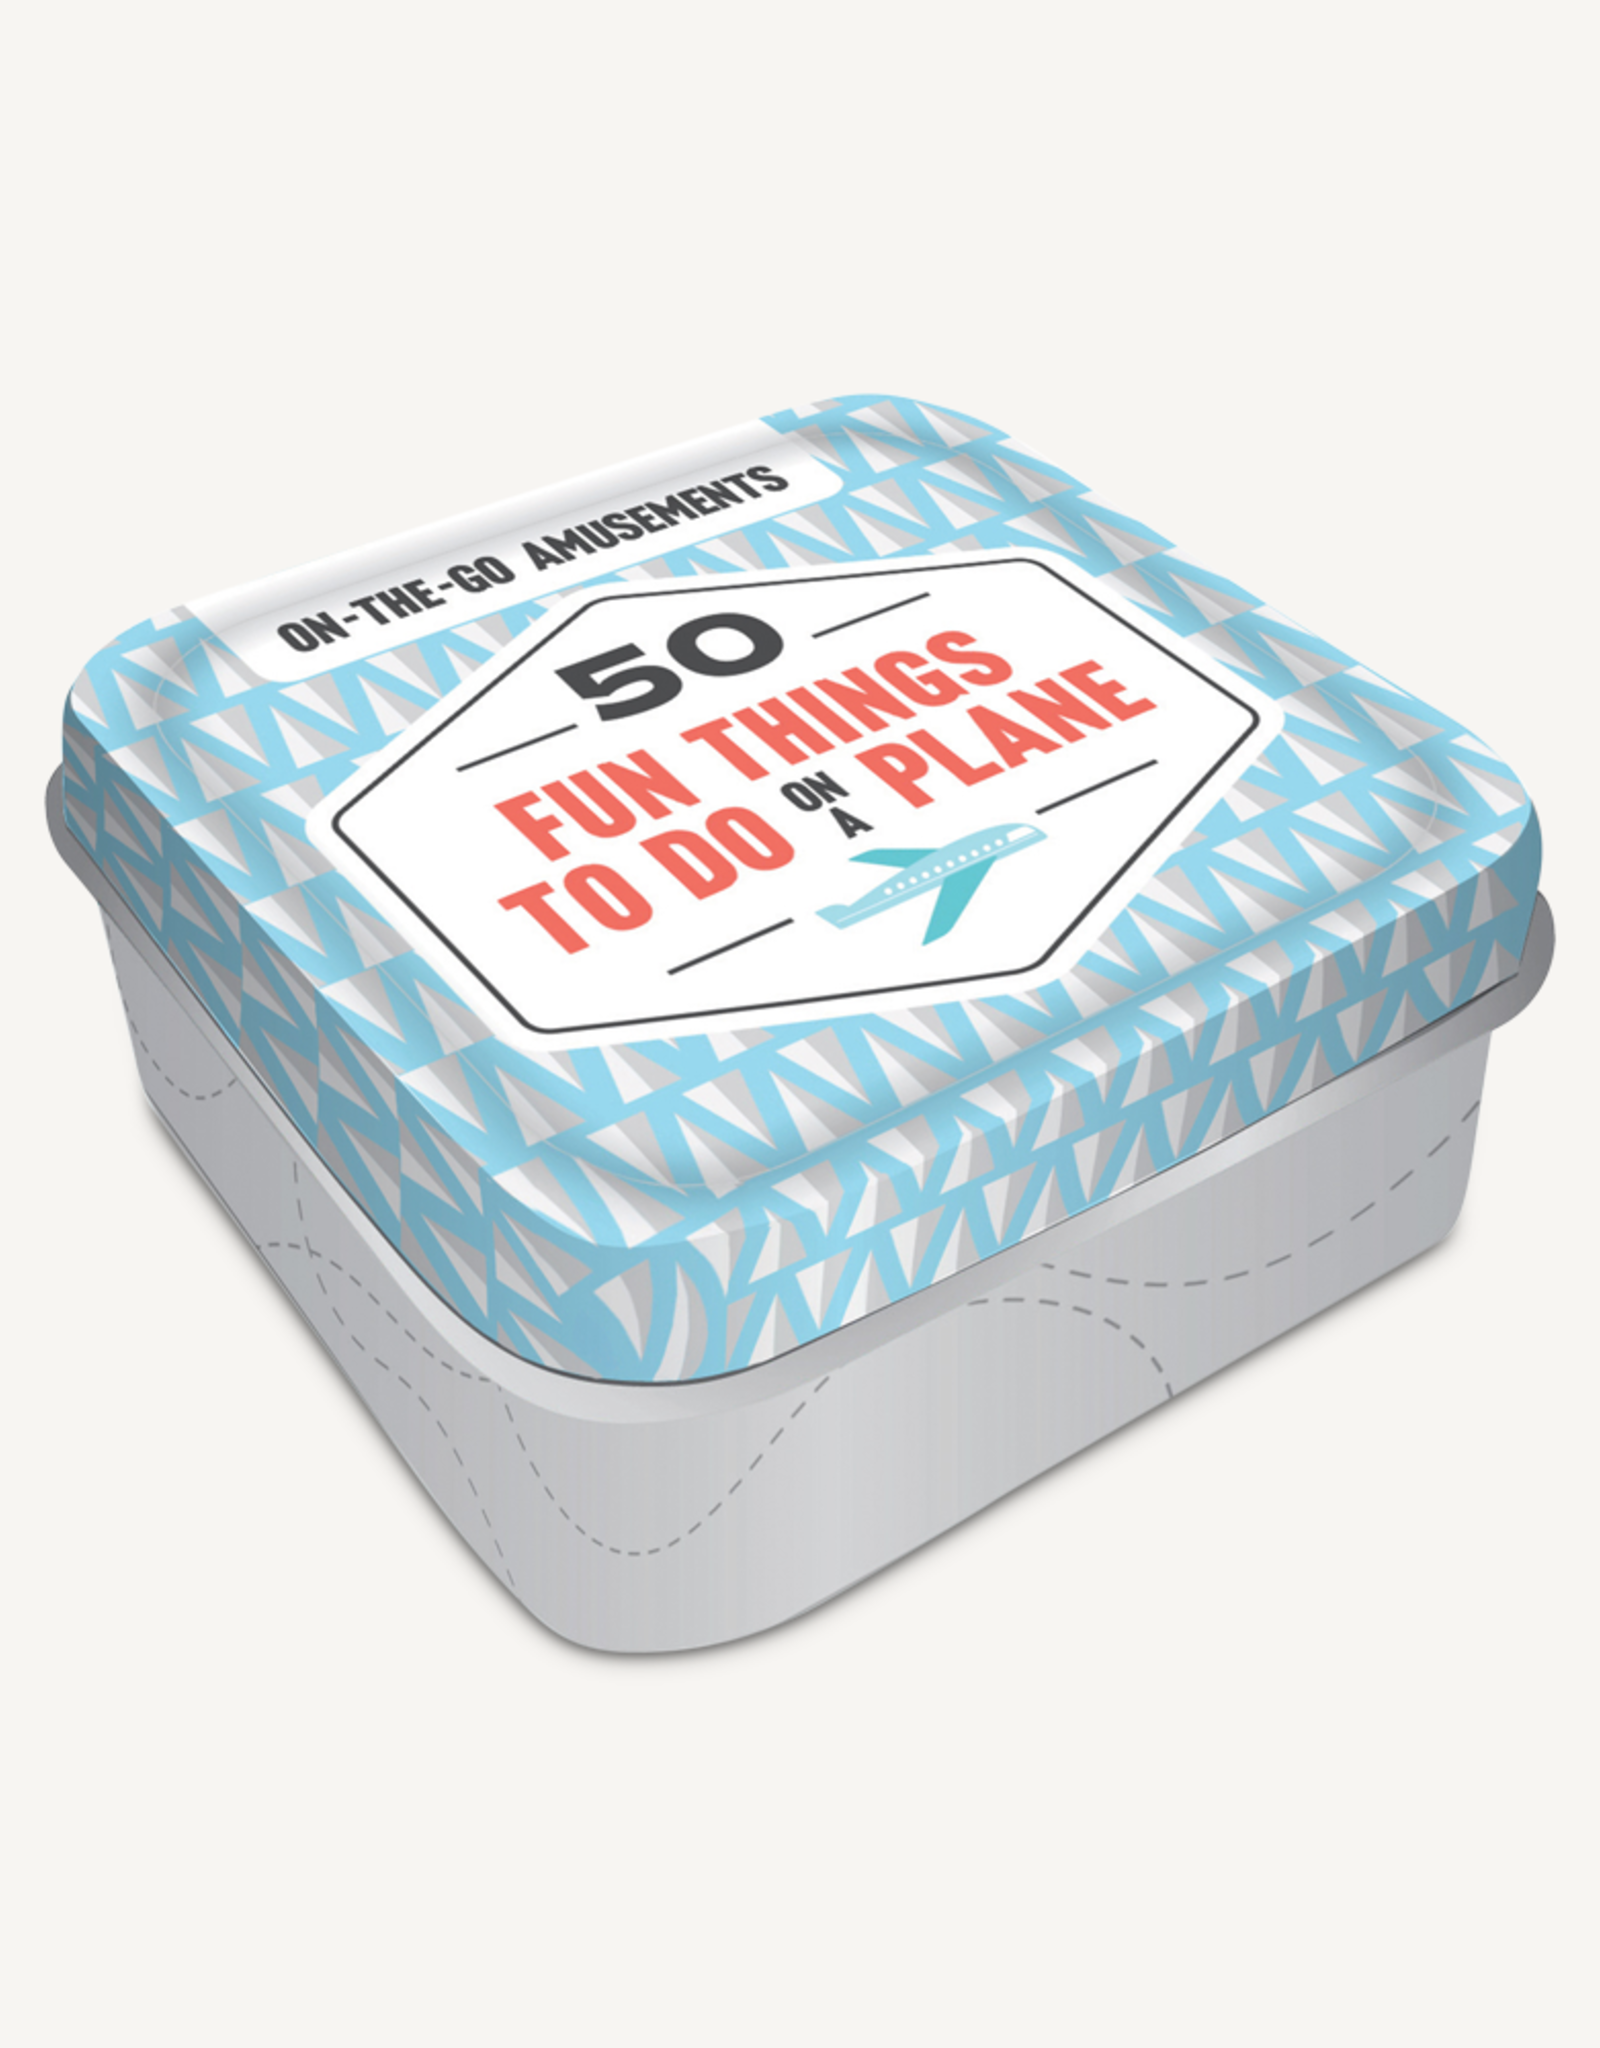 Game Tins - Fun Things To Do On A Plane